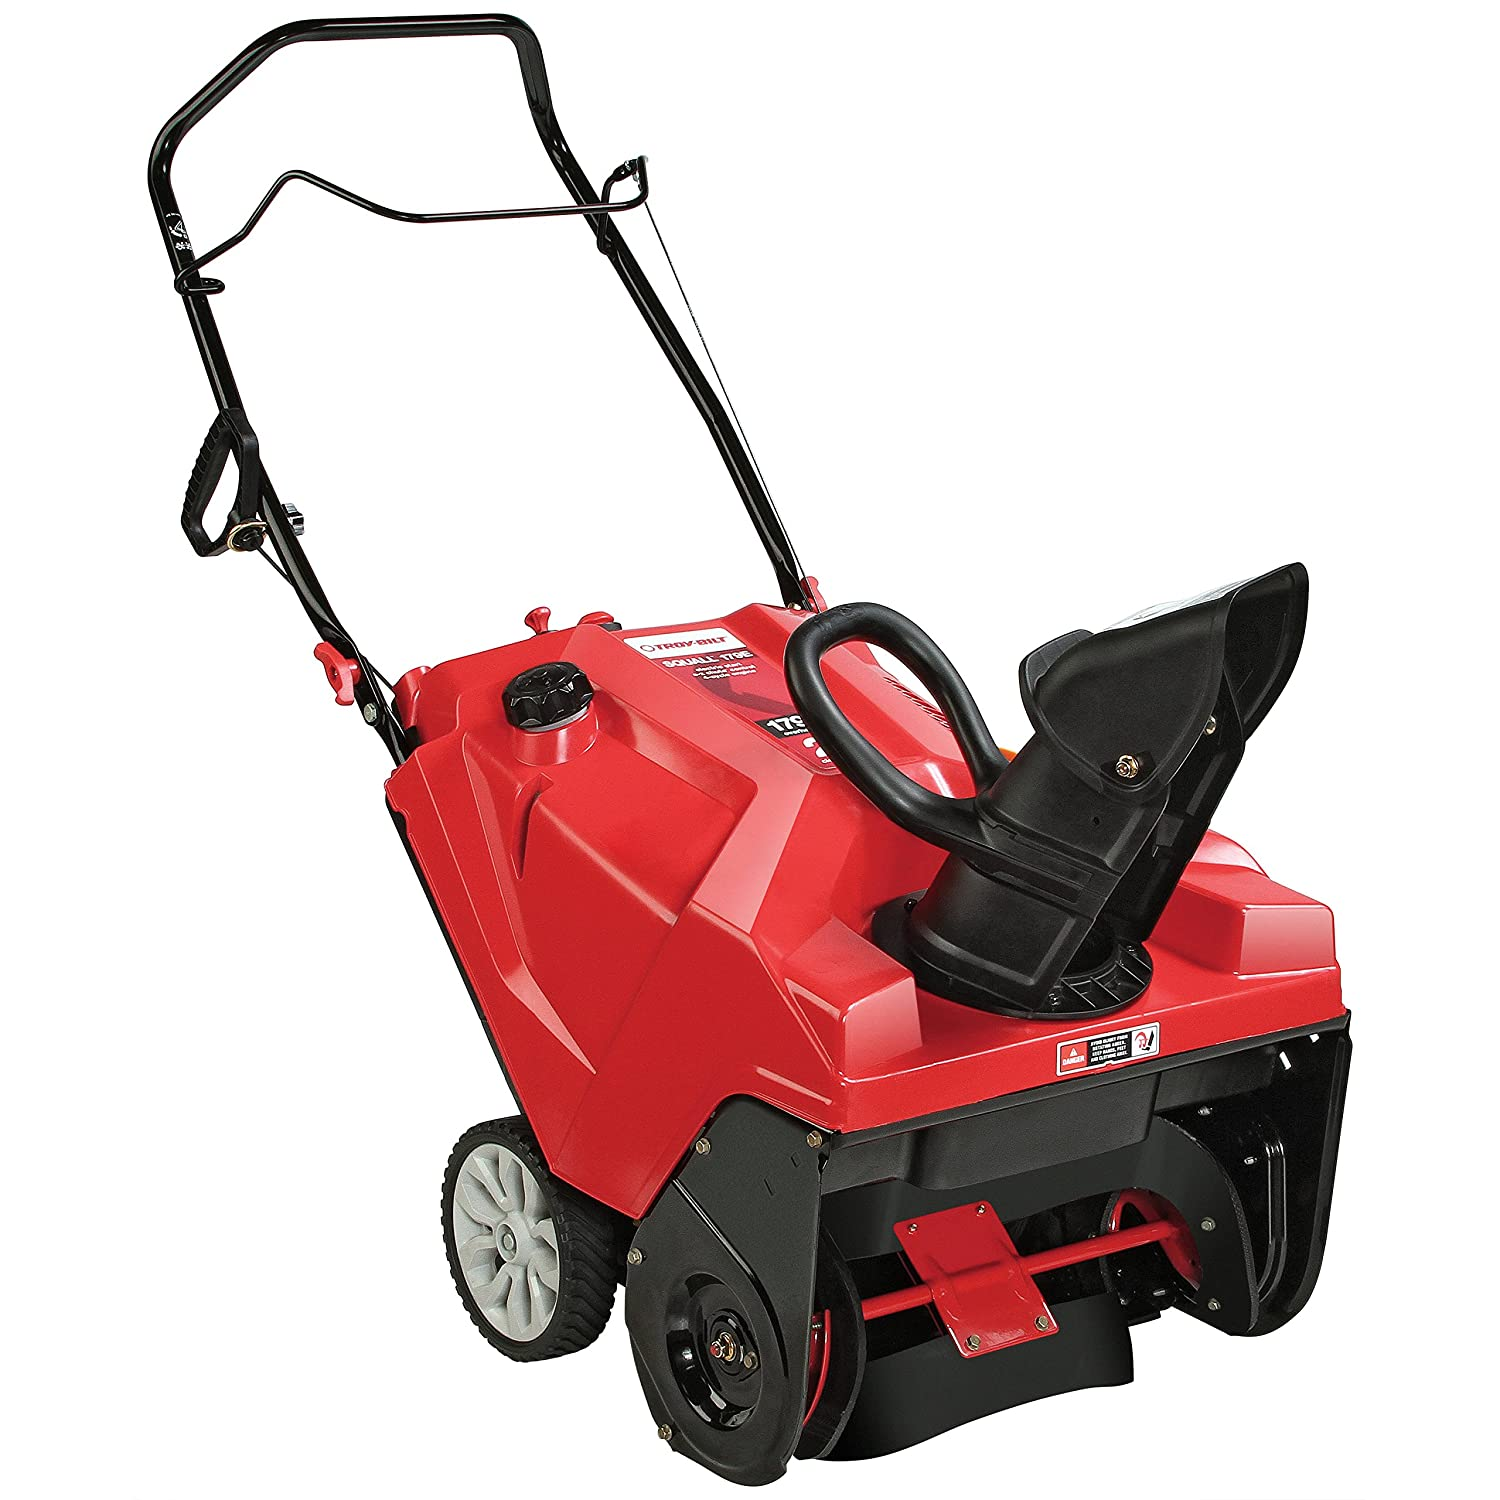 Amazon.com : Troy-Bilt Squall 179cc Electric Start 21-Inch Single Stage Gas Snow  Thrower : Garden & Outdoor